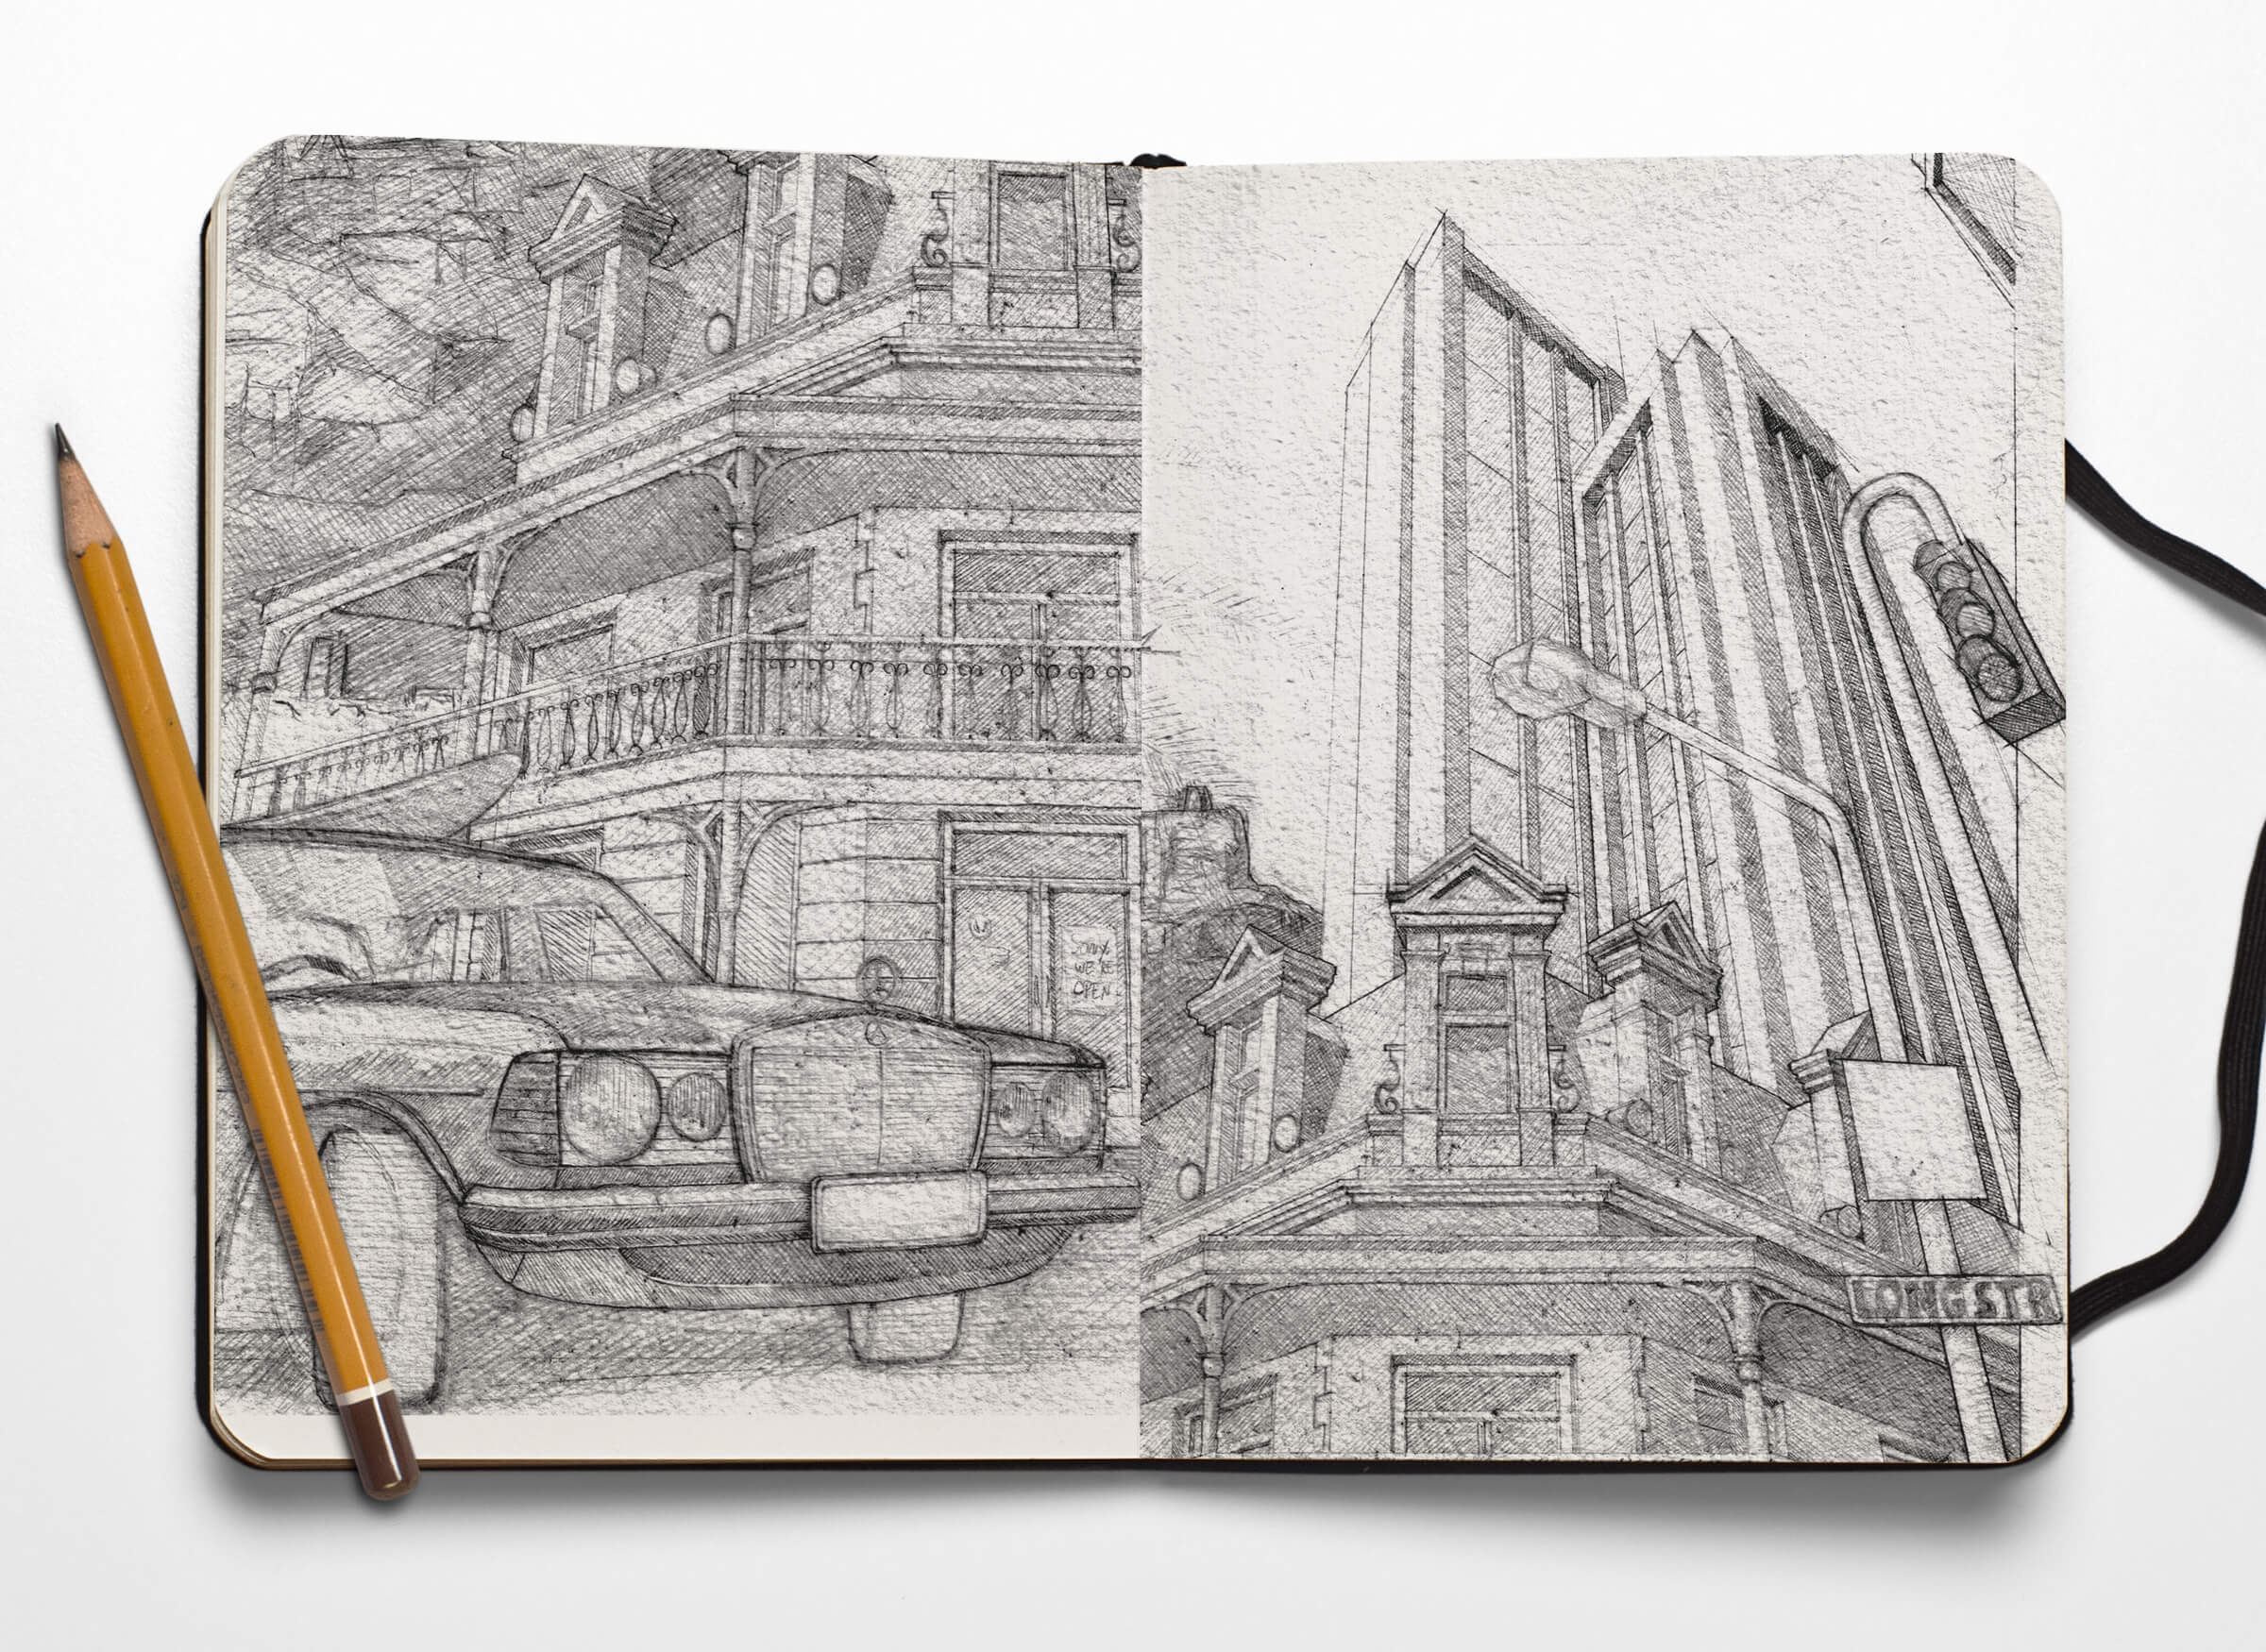 Sketchbook Mercedes und Kolonialstil-Haus in Kapstadt